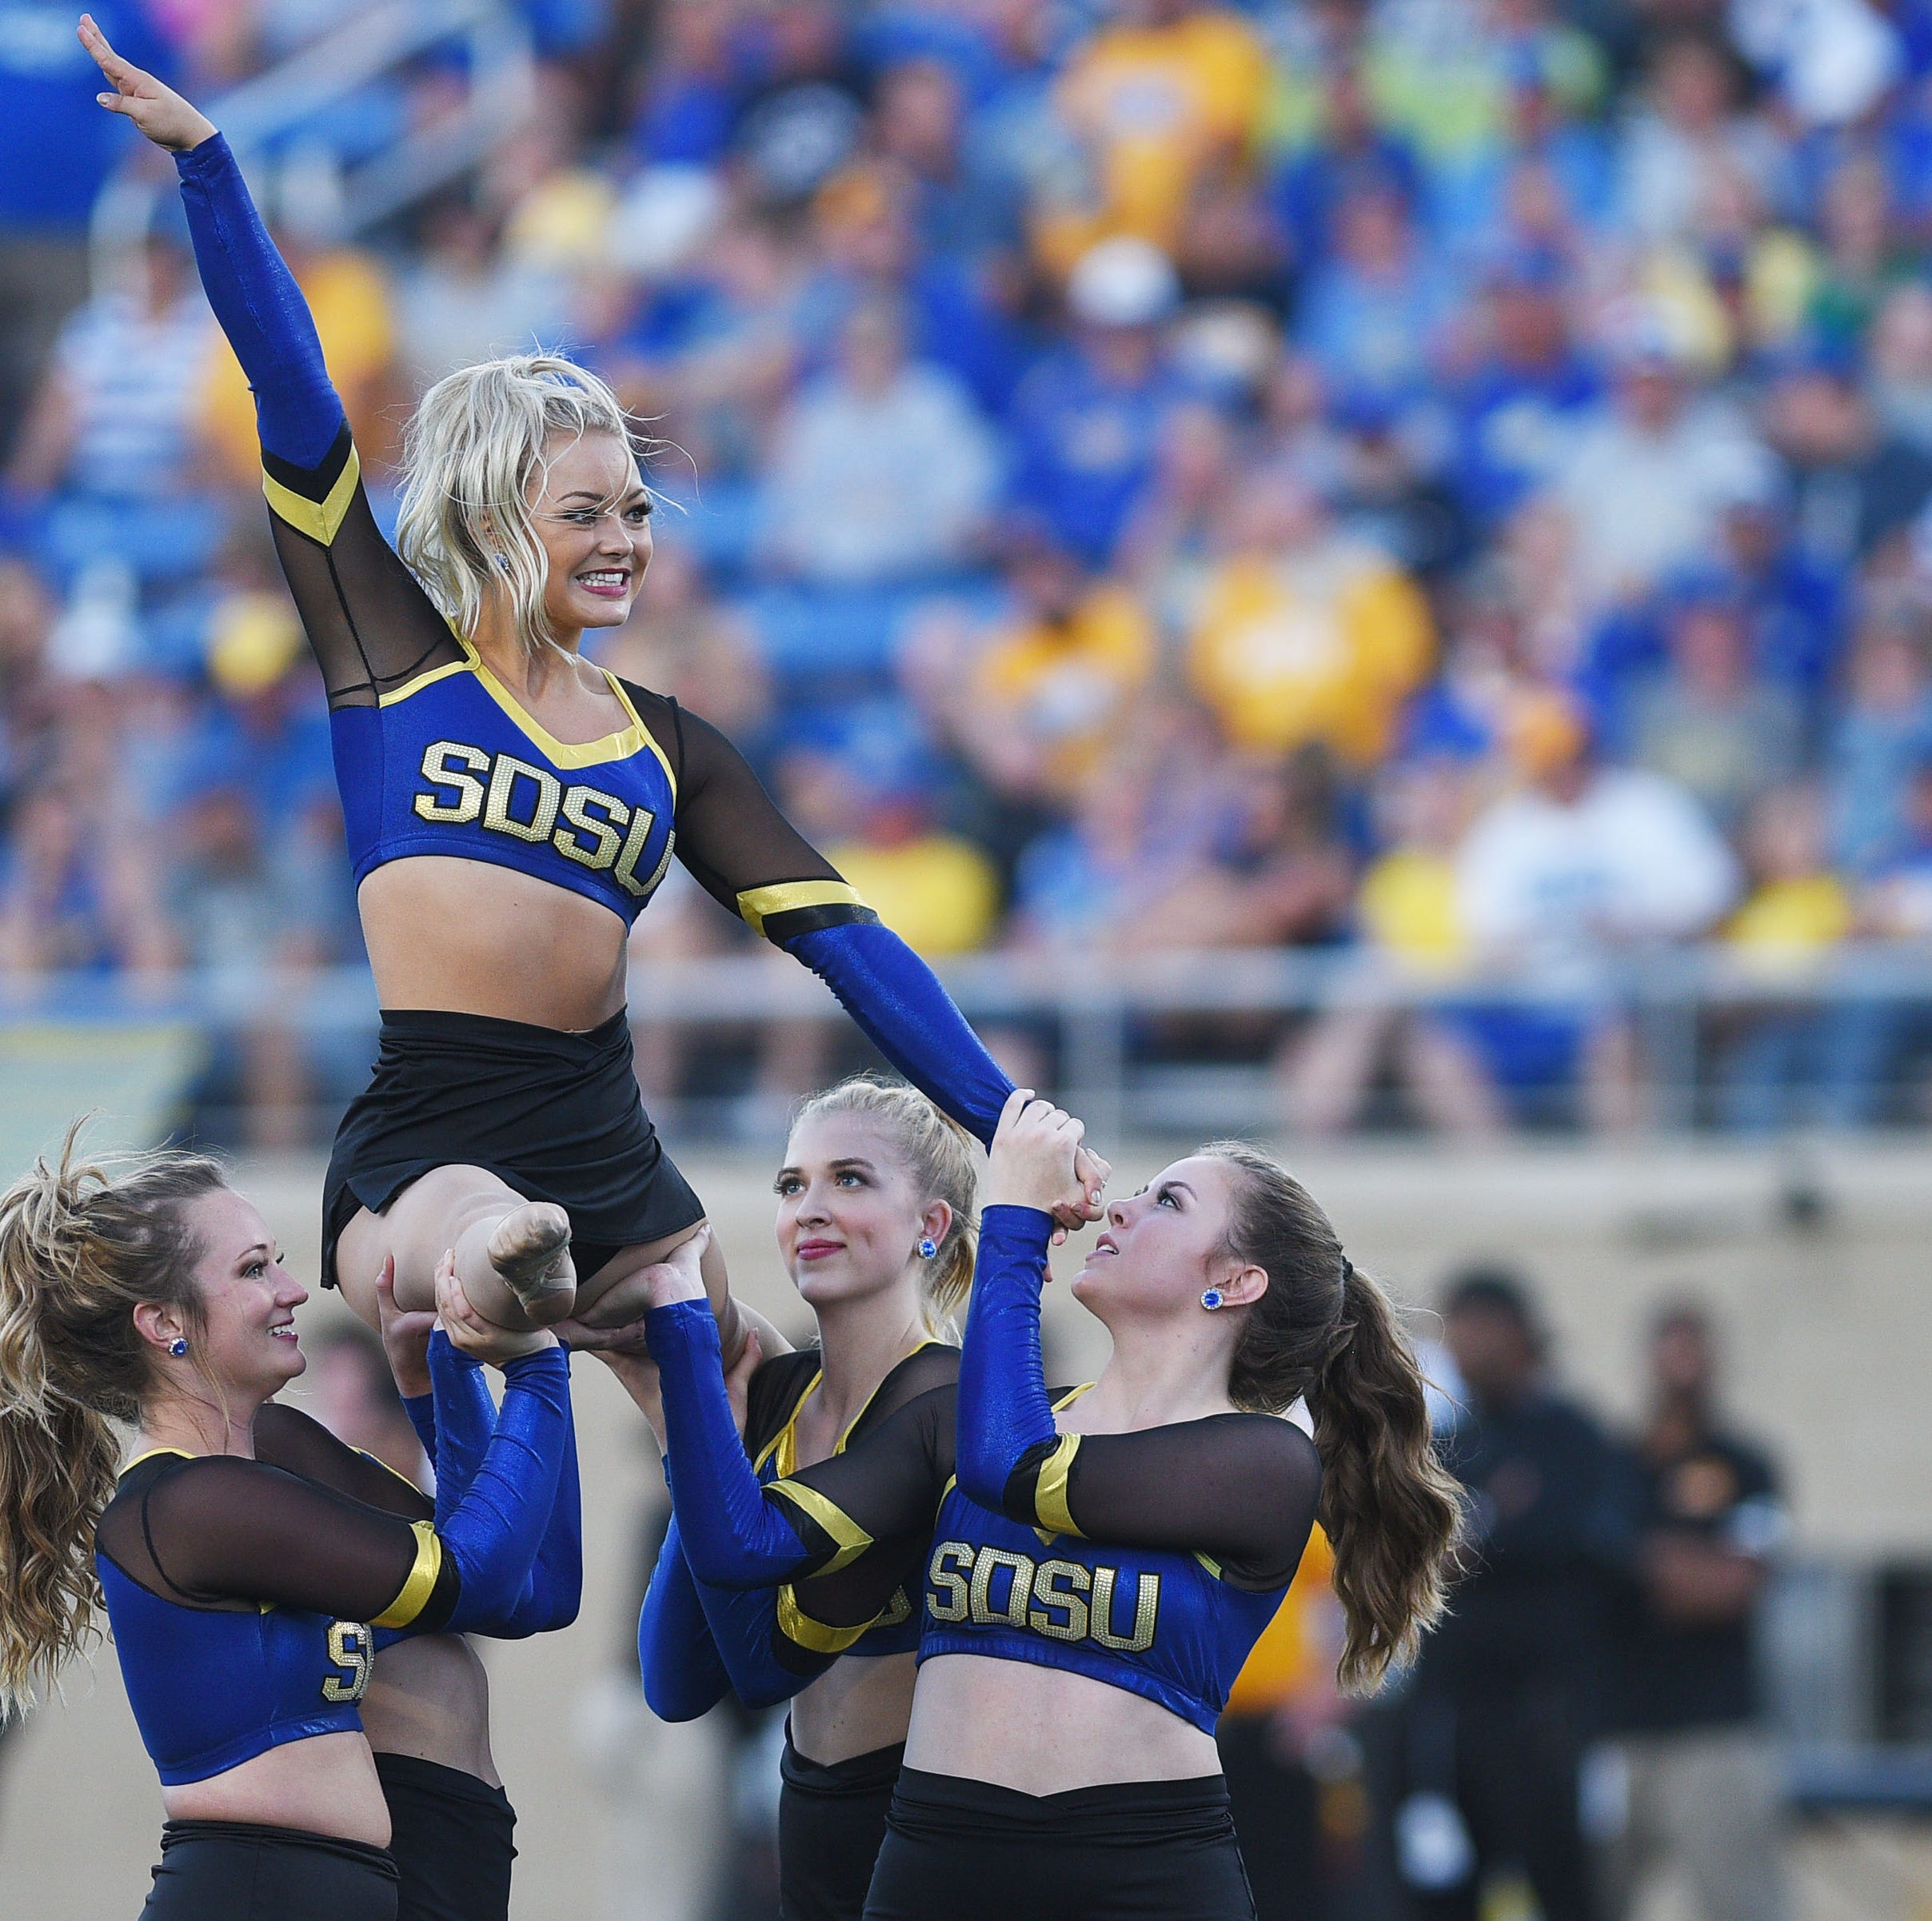 SDSU dance performs during the game against Arkansas-Pine Bluff Saturday, Sept. 15, at Dana J Dykhouse Stadium in Brookings.